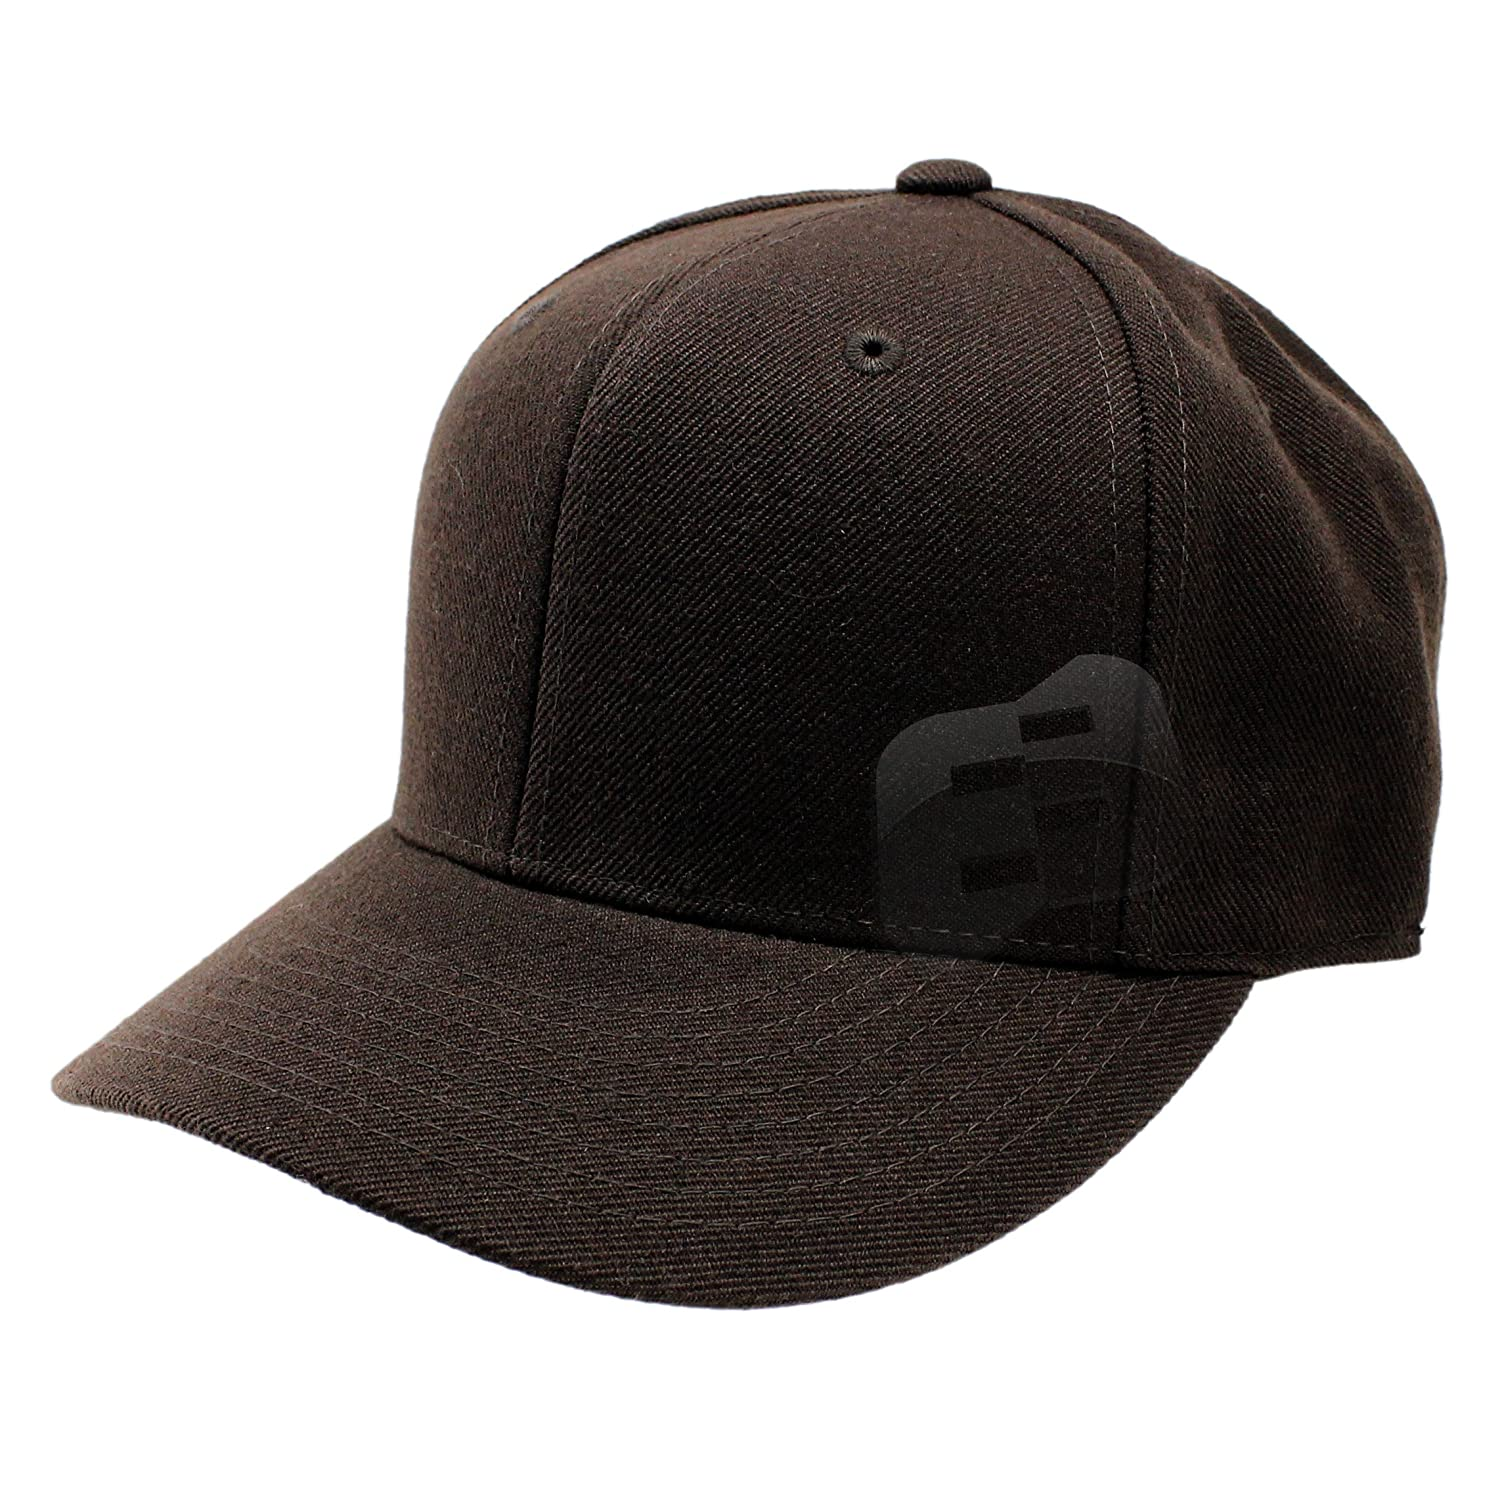 762d3fde43348f Enimay Baseball Hats Caps Curved Bill Solid Color No Logo Brown 7 1/8 at  Amazon Women's Clothing store: